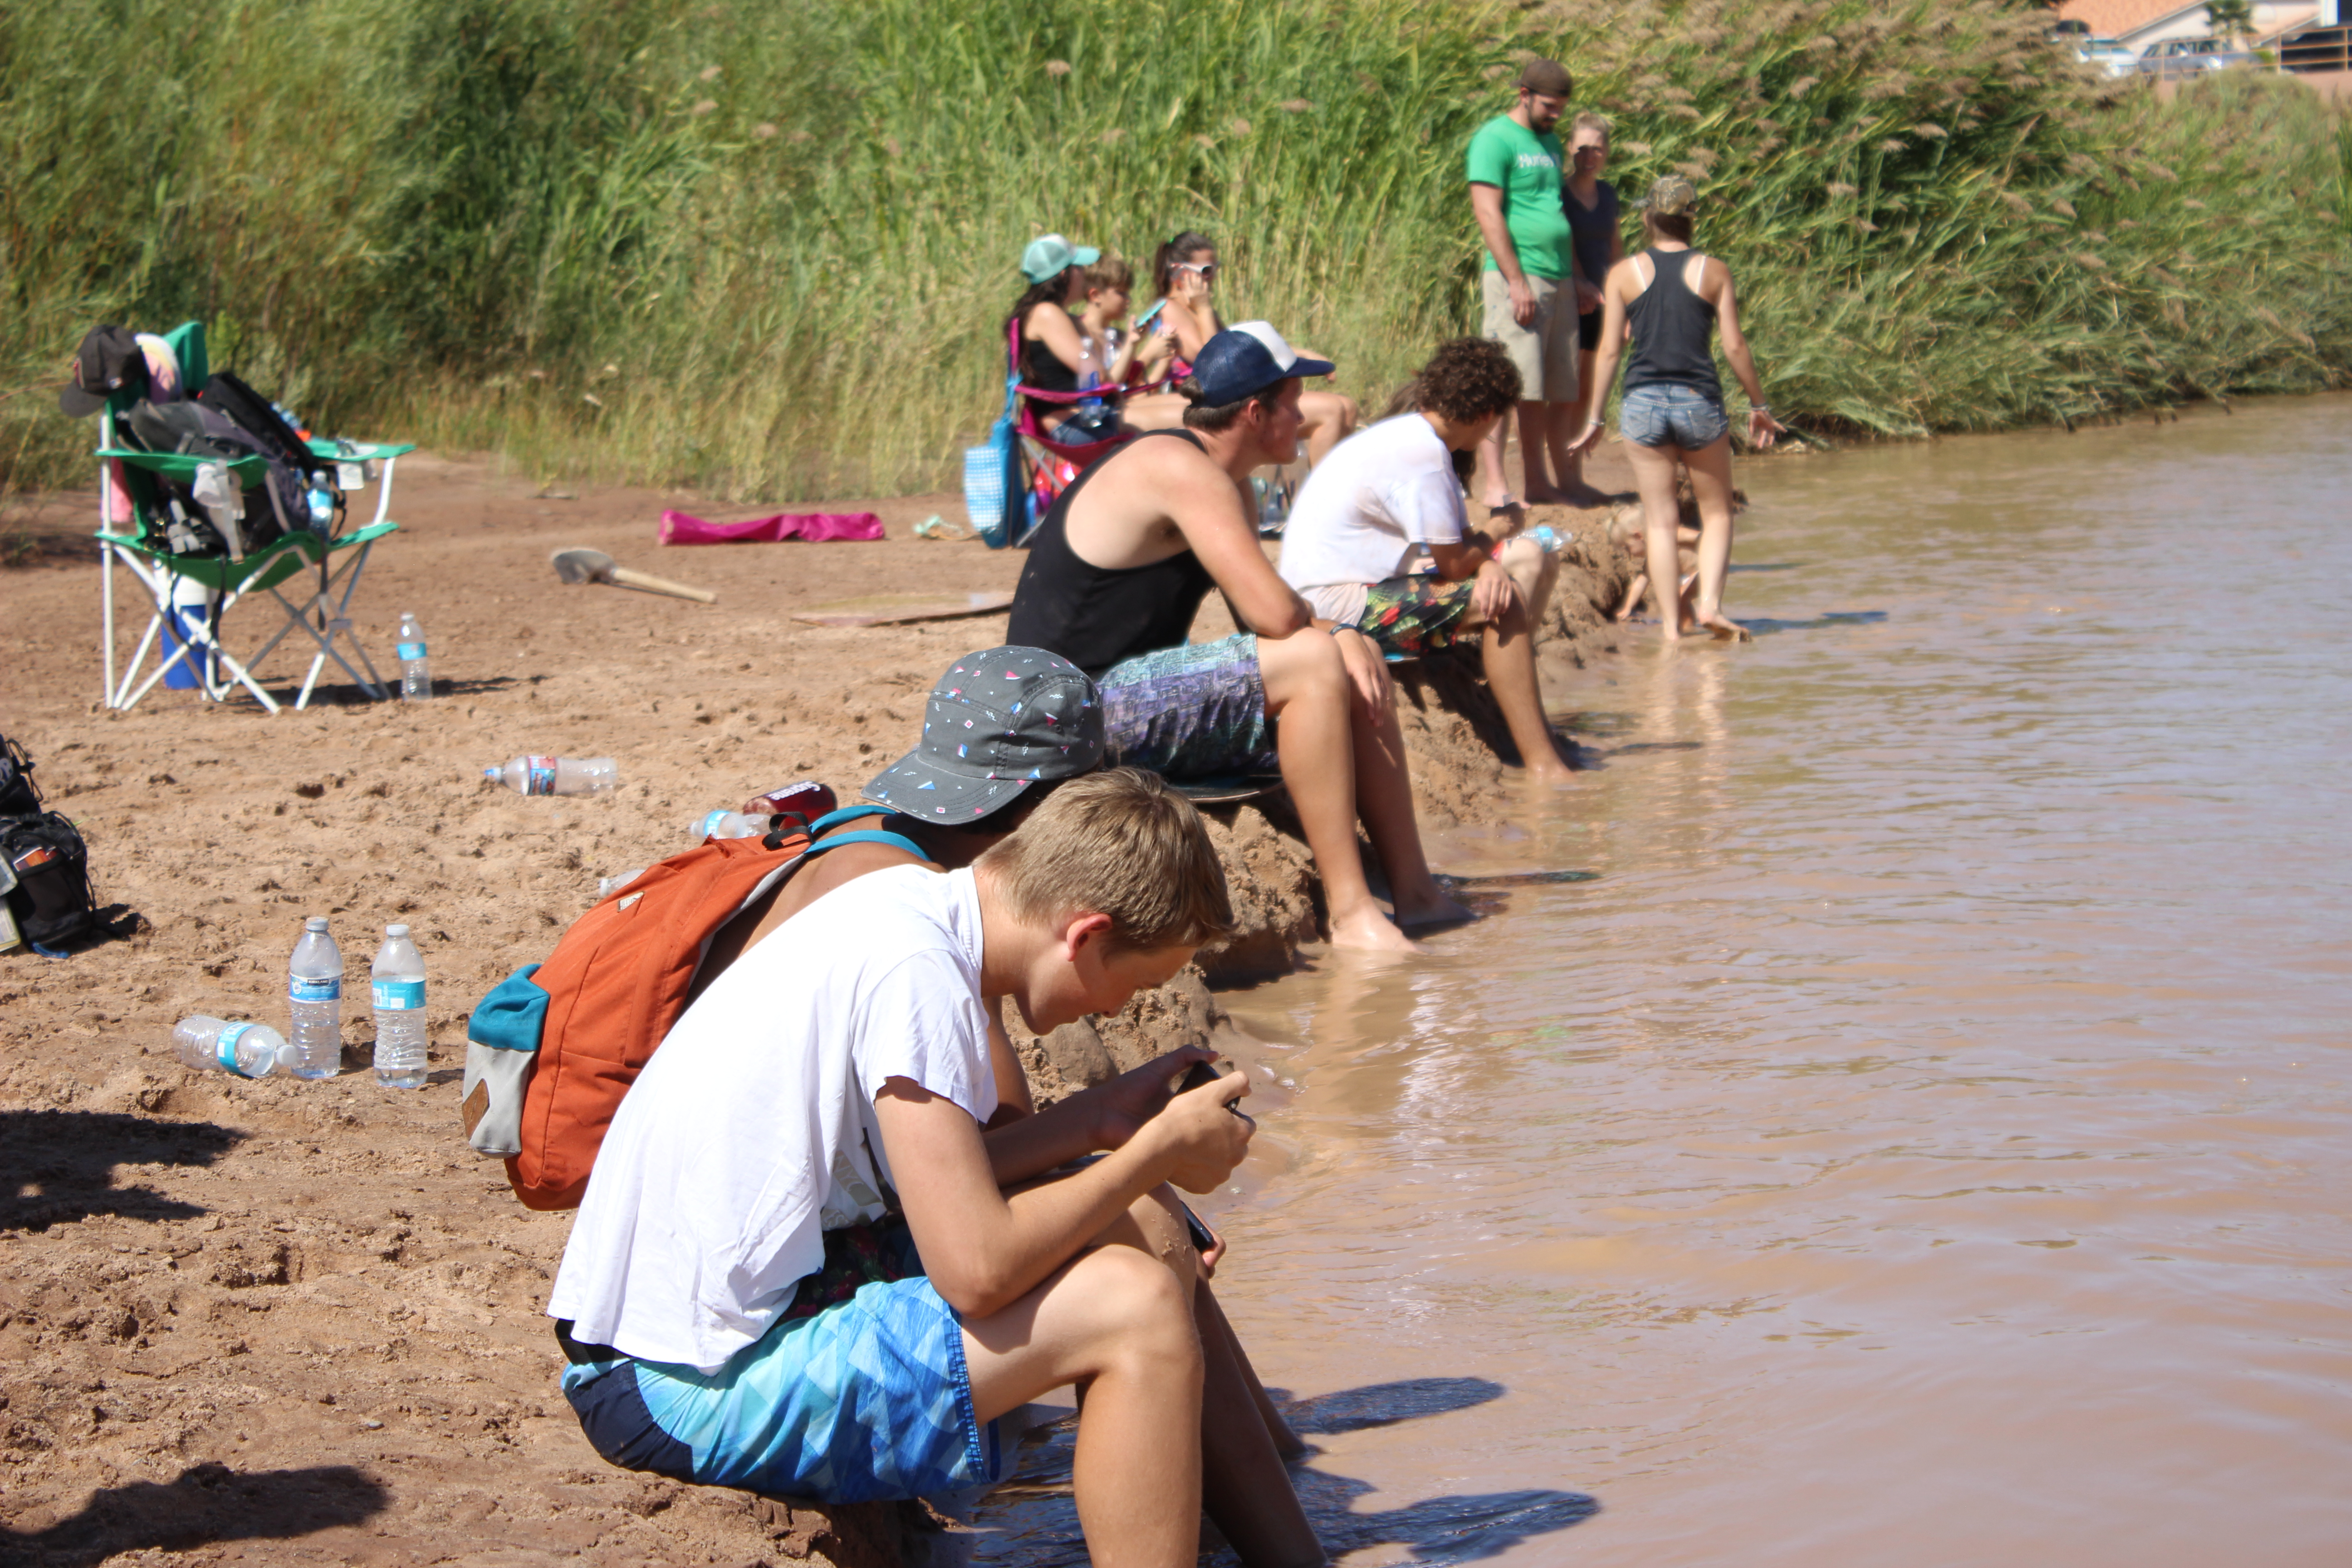 Onlookers enjoy the warm temperatures and cool water during the 1st Annual Skimapalooza skimboarding competition, St. George, Utah, Aug. 13, 2016 | Photo by Don Gilman, St. George News